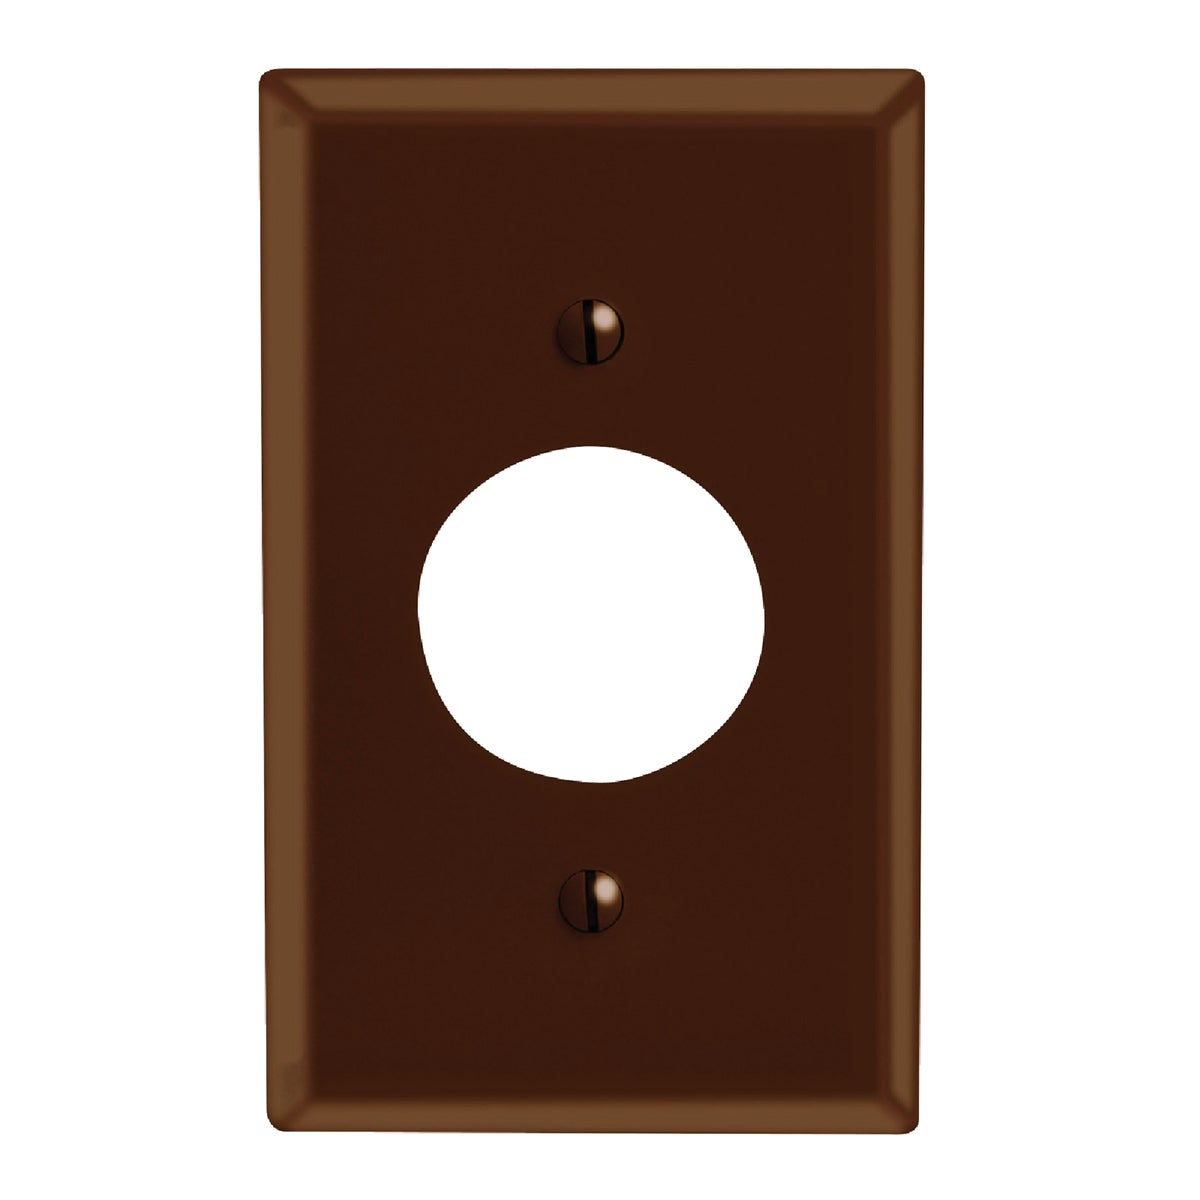 BRN 1-OUTLET WALL PLATE